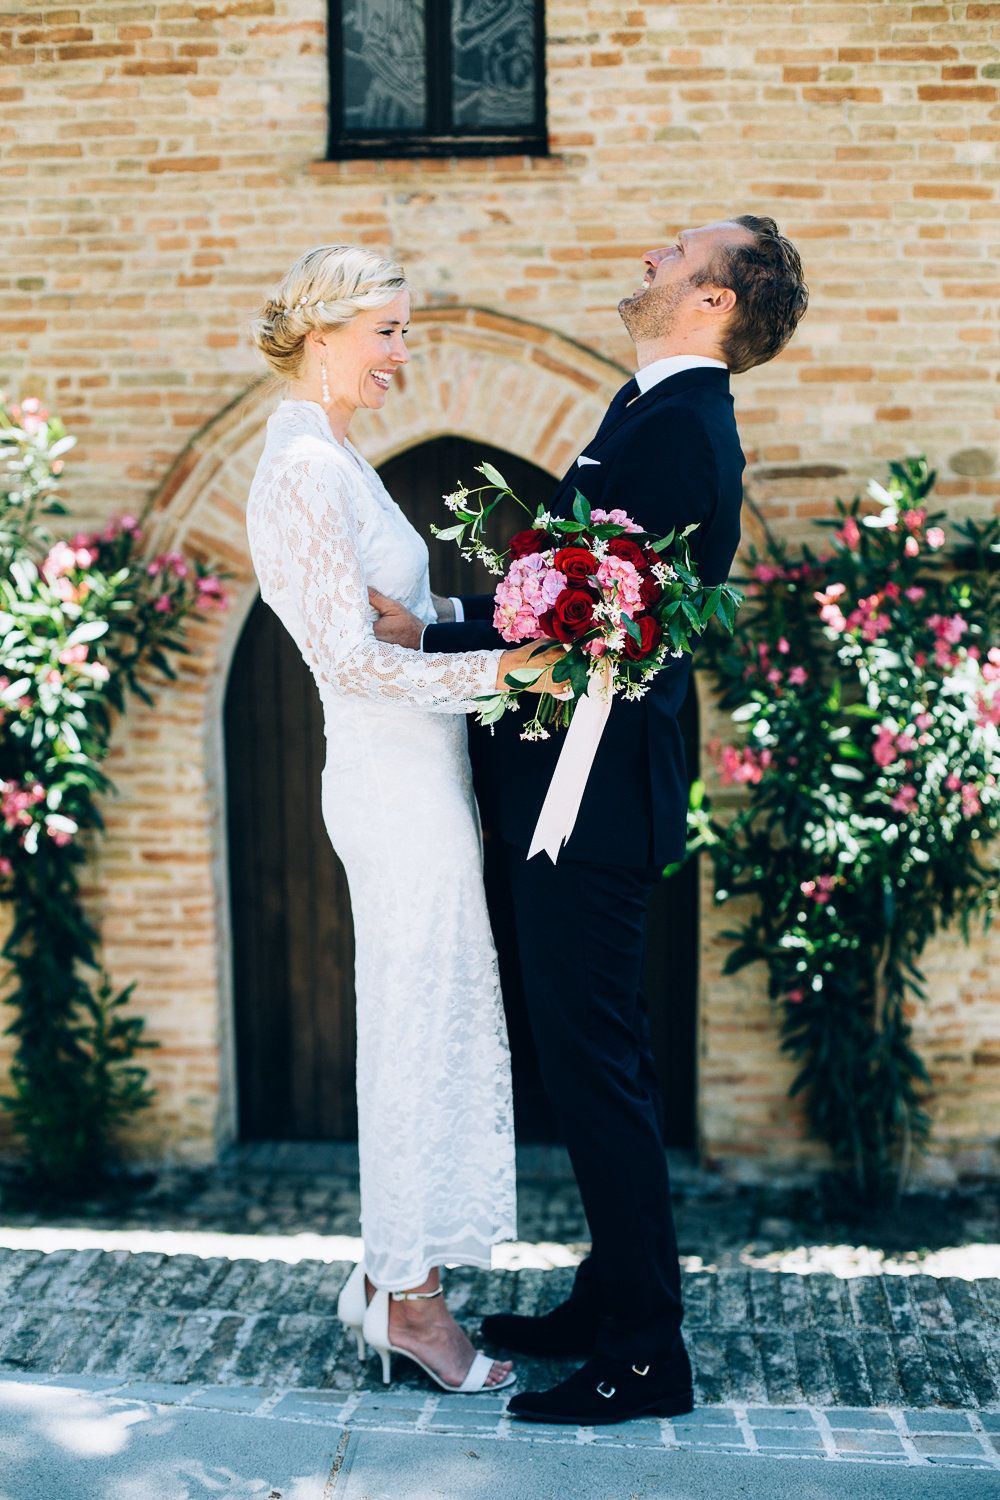 """""""Our first wedding was on September 7, 2007. We got married in the Netherlands, which is where we live. It was a small weddin"""